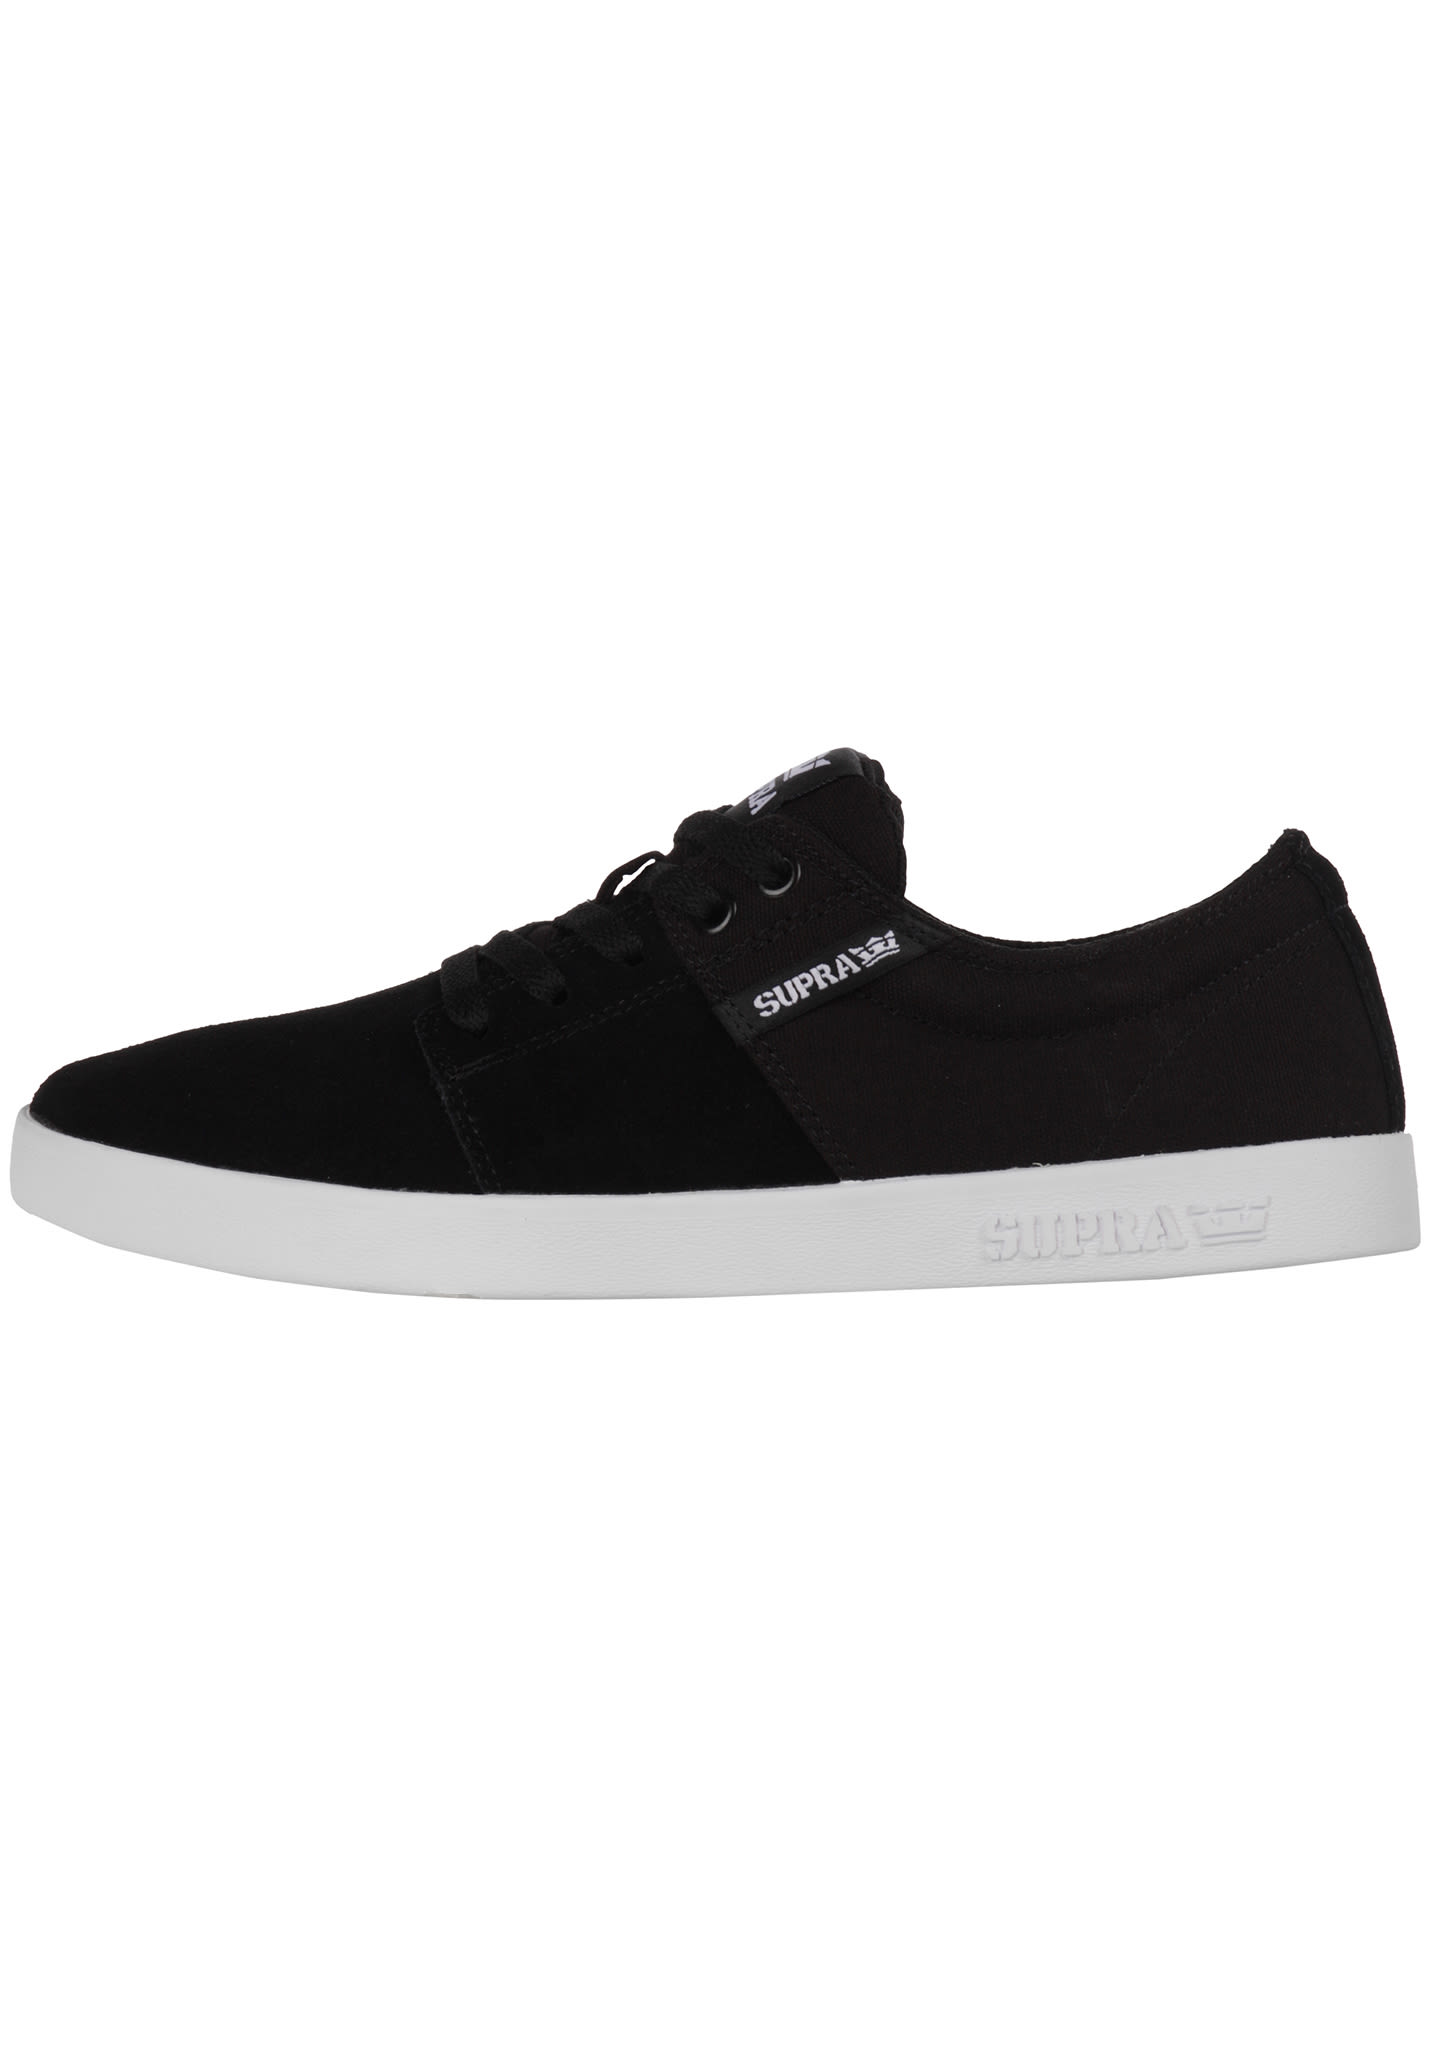 79a4735fad4b SUPRA Stacks II - Sneakers for Men - Black - Planet Sports